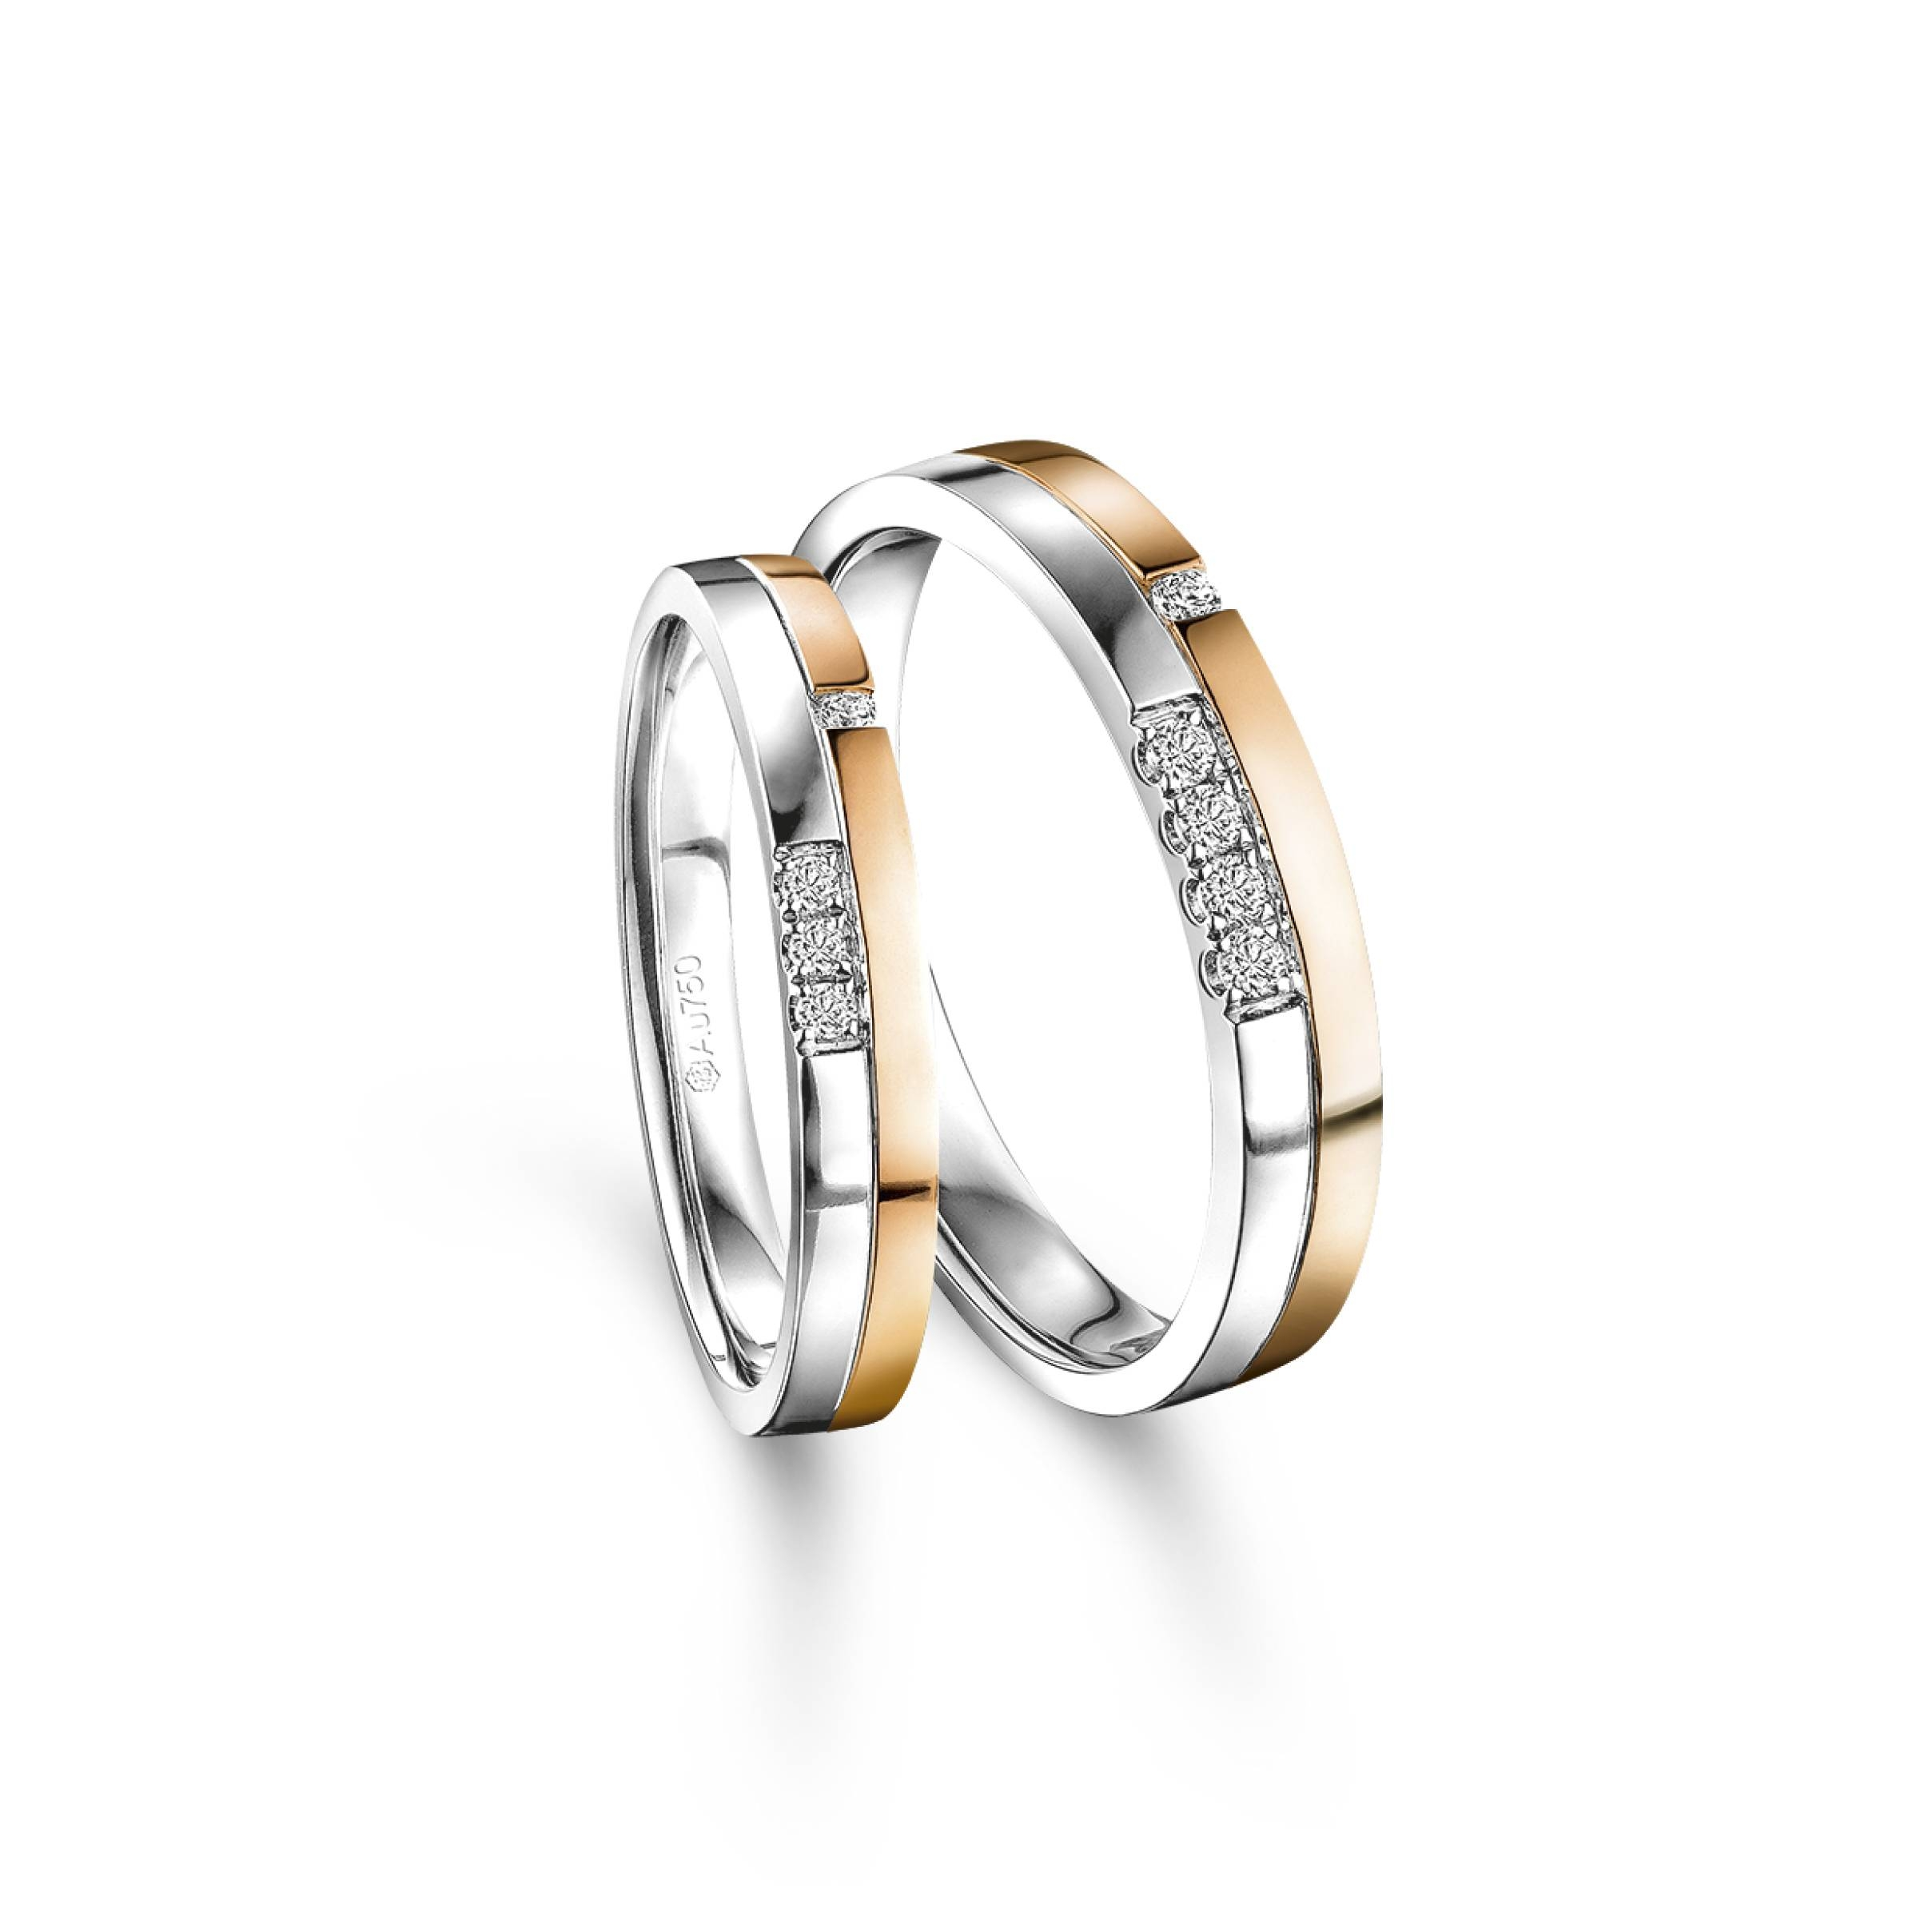 Wedding Collection – Lukfook Jewellery|lukfook Jewellery Official Intended For Wedding Bands On Necklace (View 14 of 15)